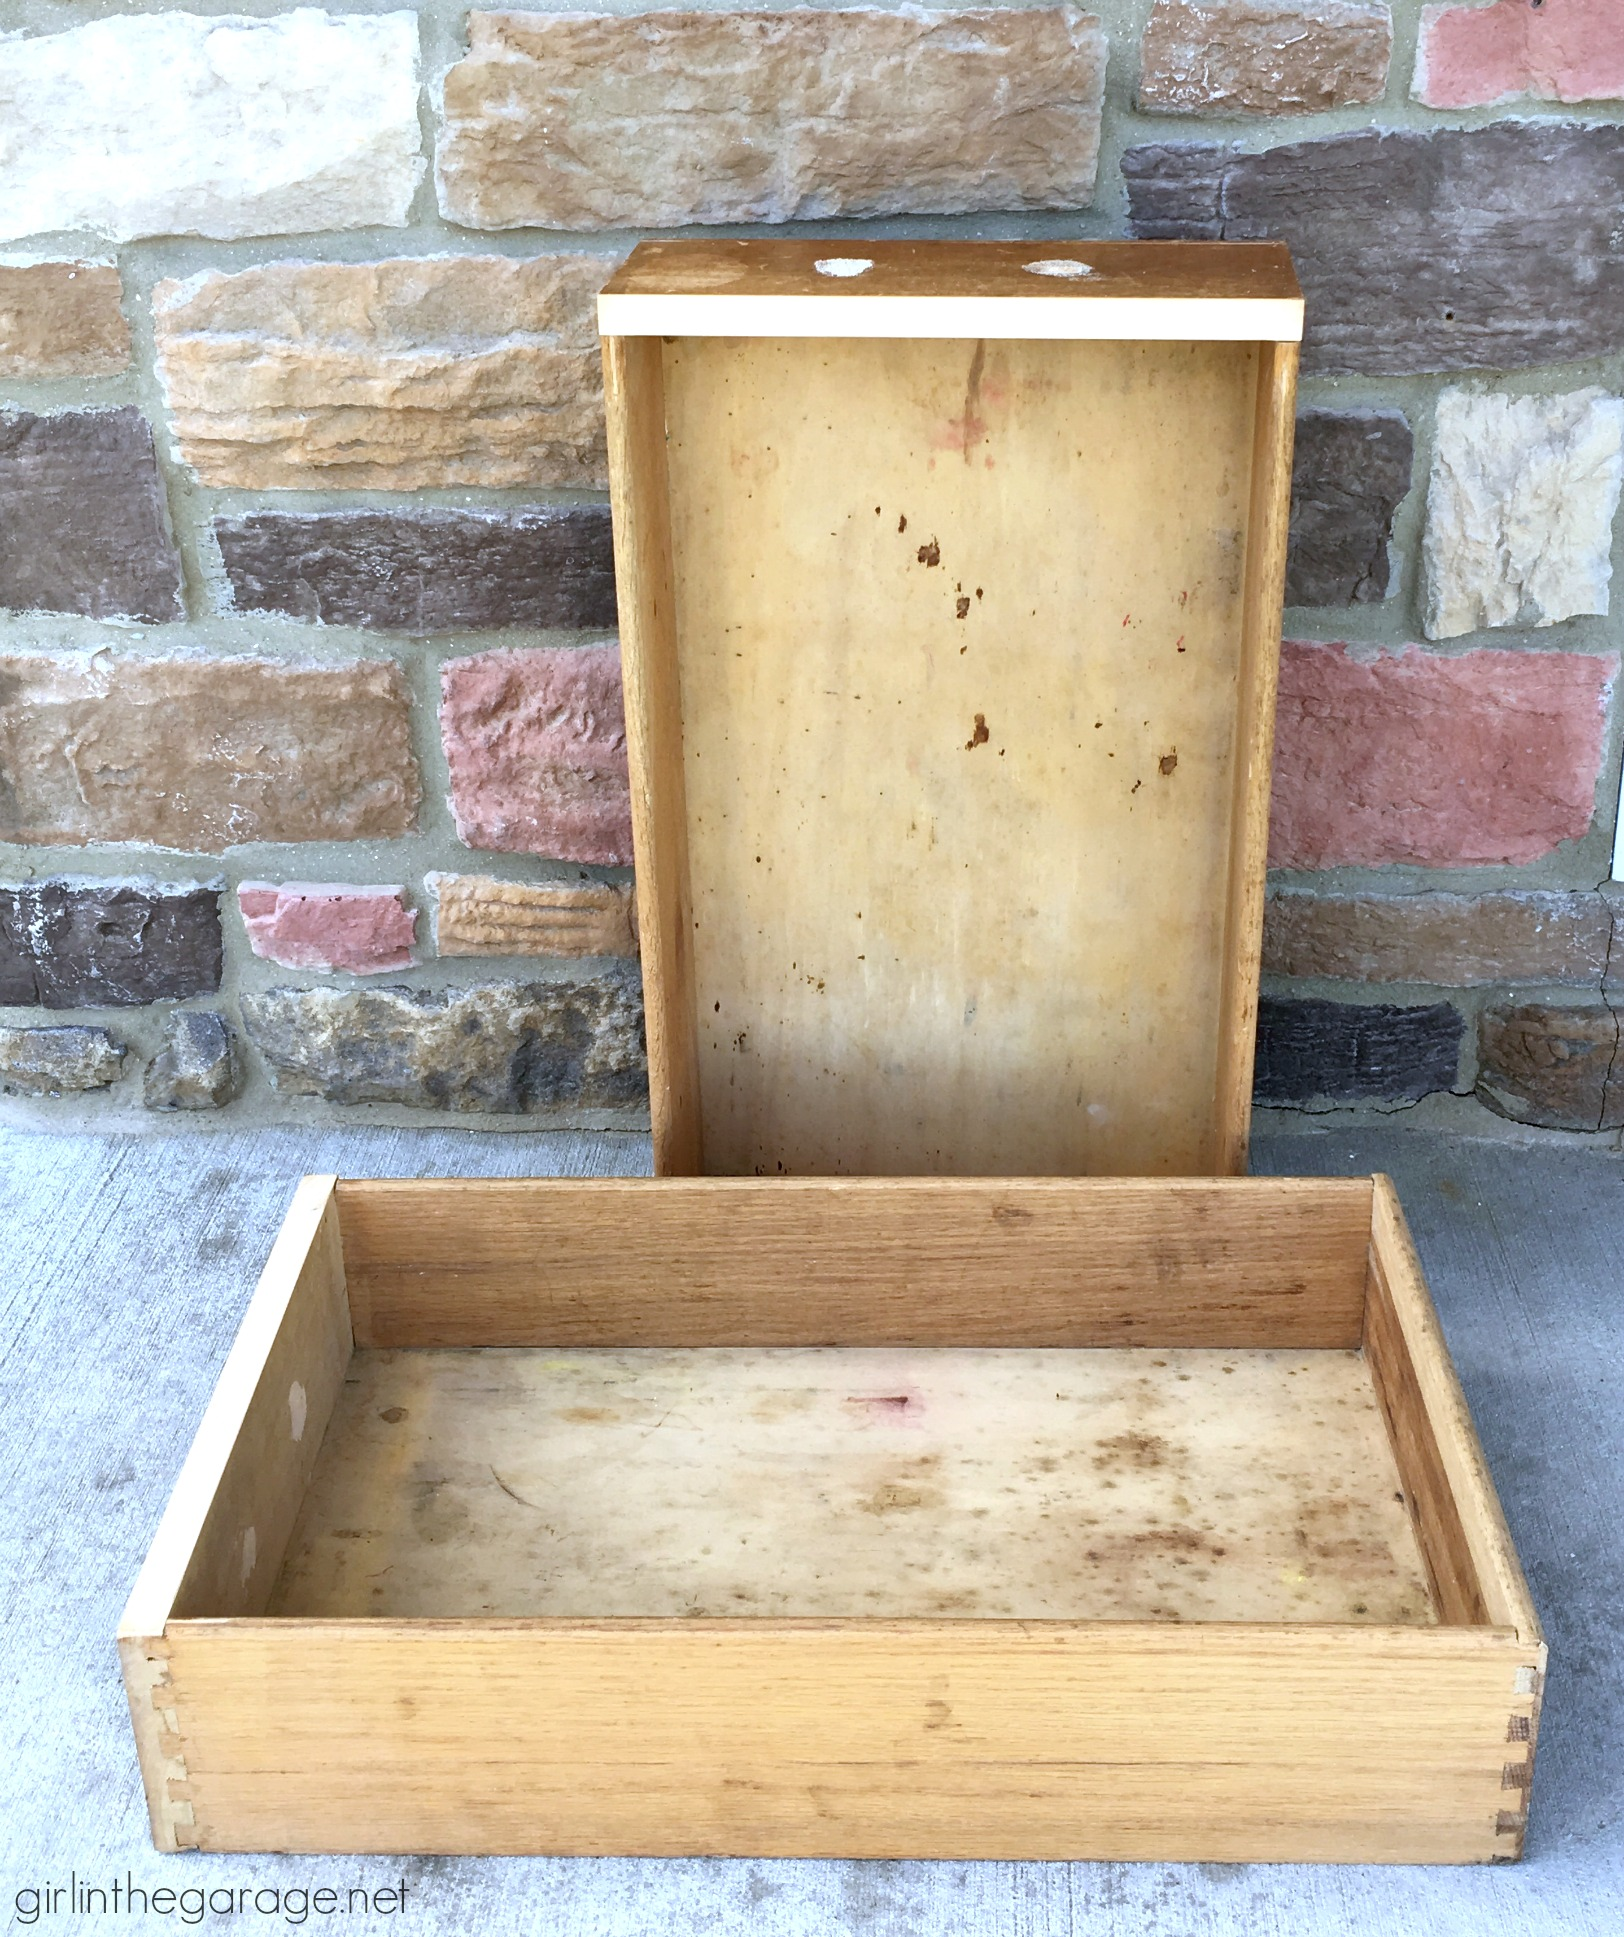 Creative upcycled drawer ideas - Girl in the Garage